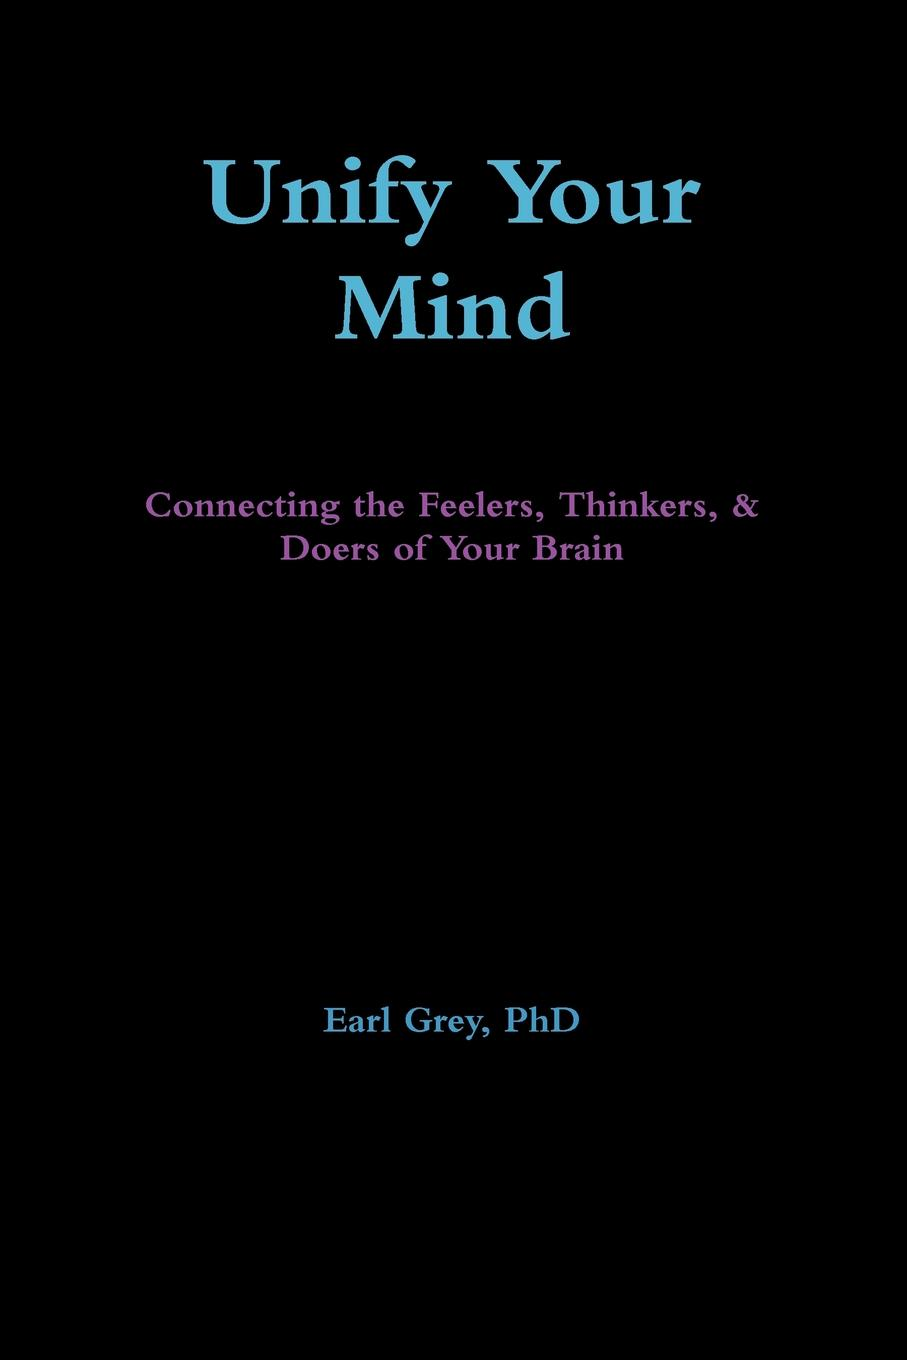 PhD Earl Grey Unify Your Mind. Connecting the Feelers, Thinkers, . Doers of Your Brain